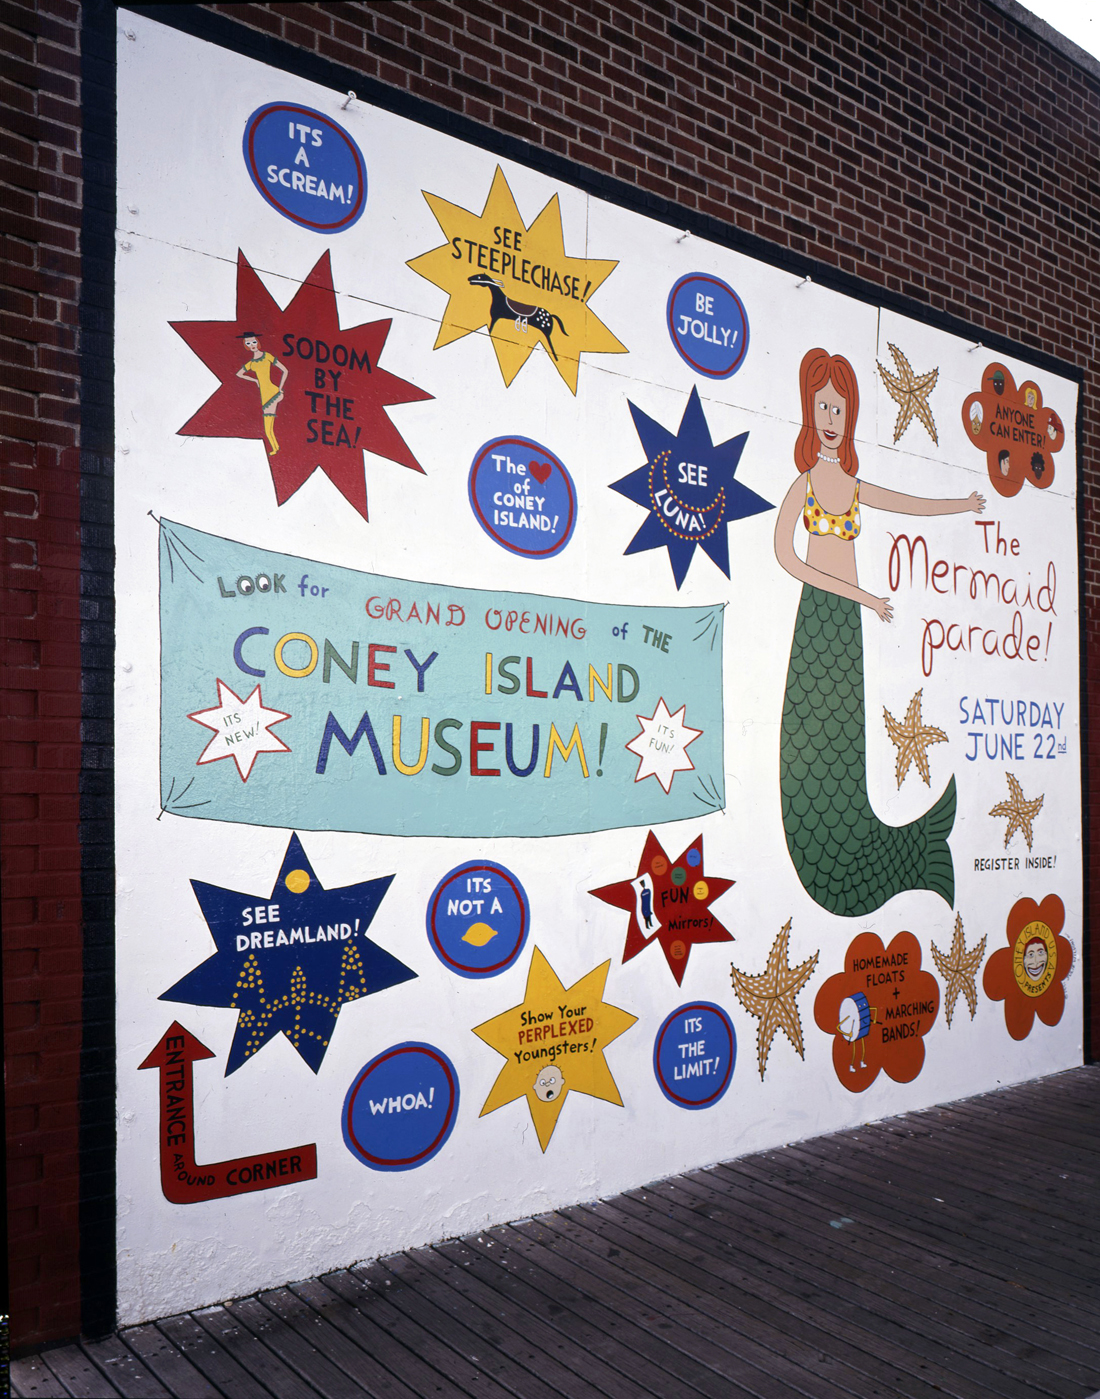 coney mural copy.jpg